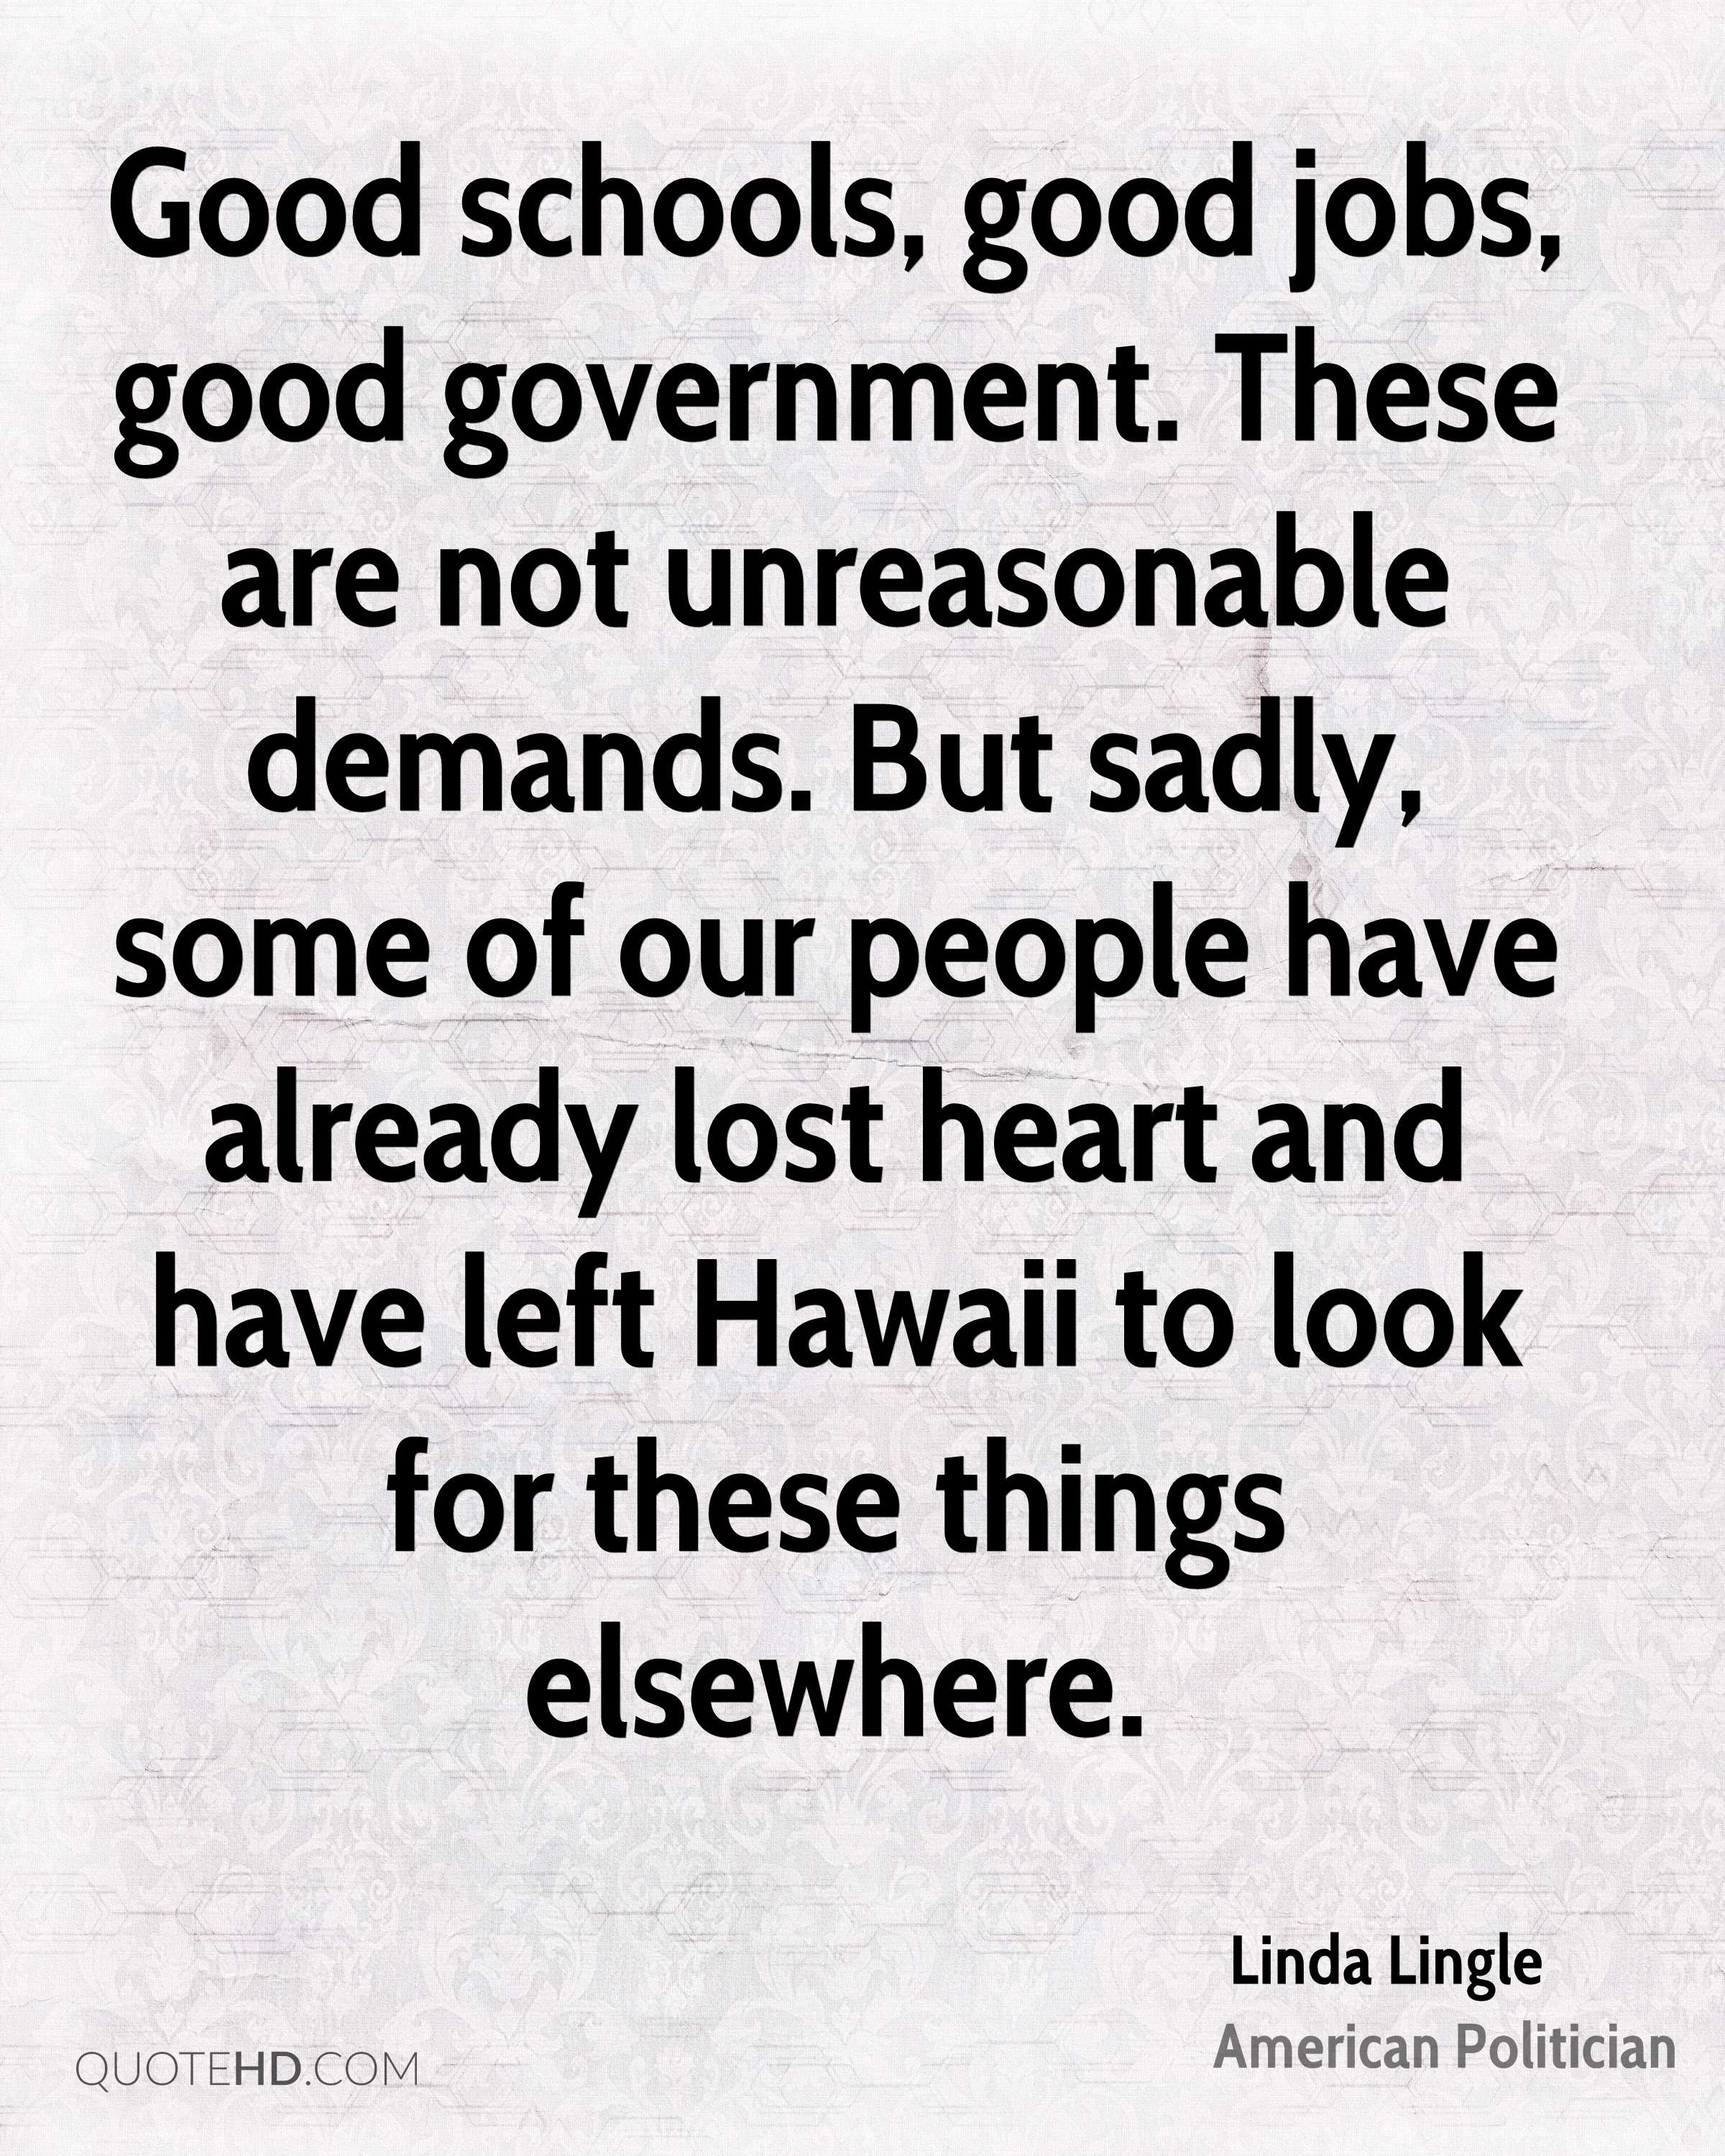 Good schools, good jobs, good government. These are not unreasonable demands. But sadly, some of our people have already lost heart and have left Hawaii to look for these things elsewhere.